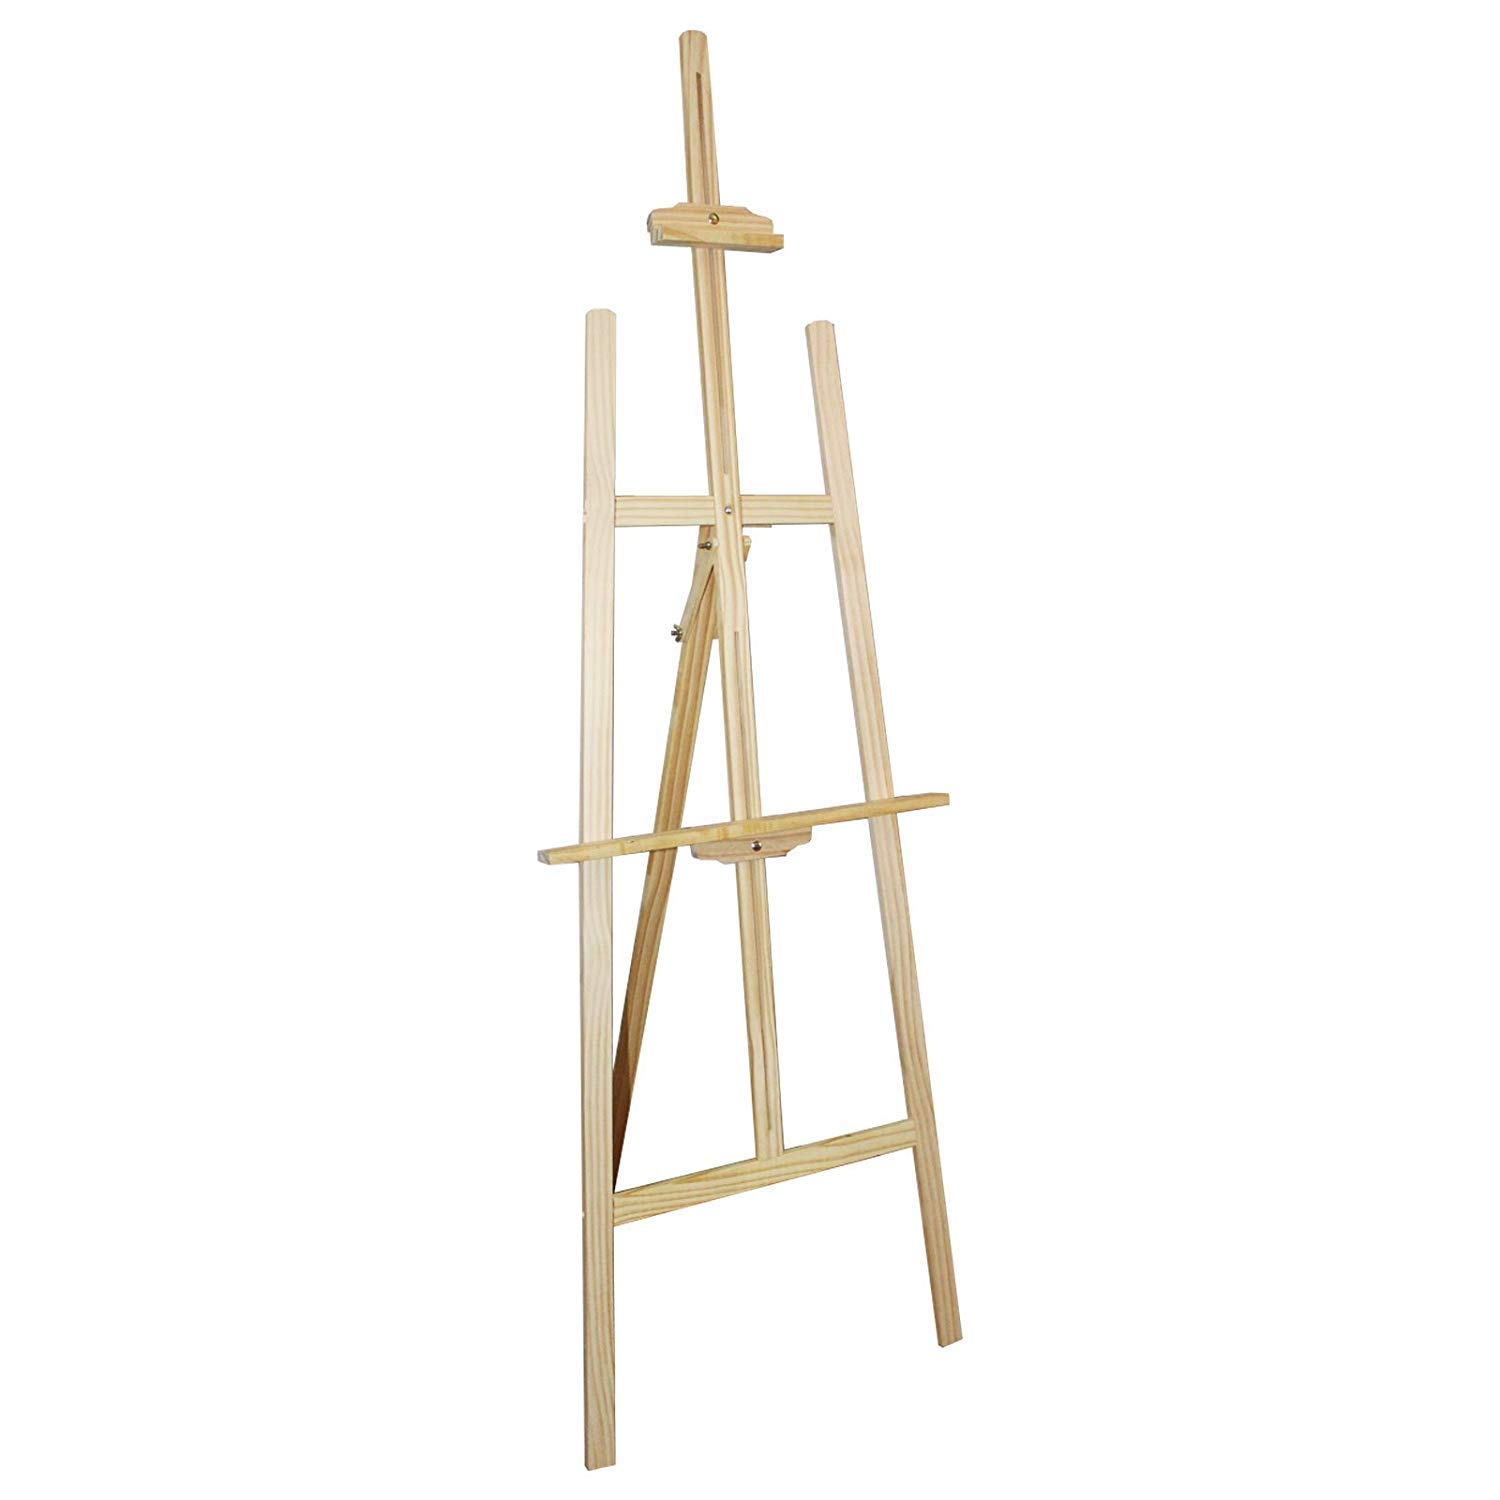 Professional Wooden Art Display Canvas Painting Easel by Kurtzy - 137cm Tall Adjustable Wood Easel for Kids and Adults - Easy to Assemble - Fits Small and Large Canvas's - High Quality Easels